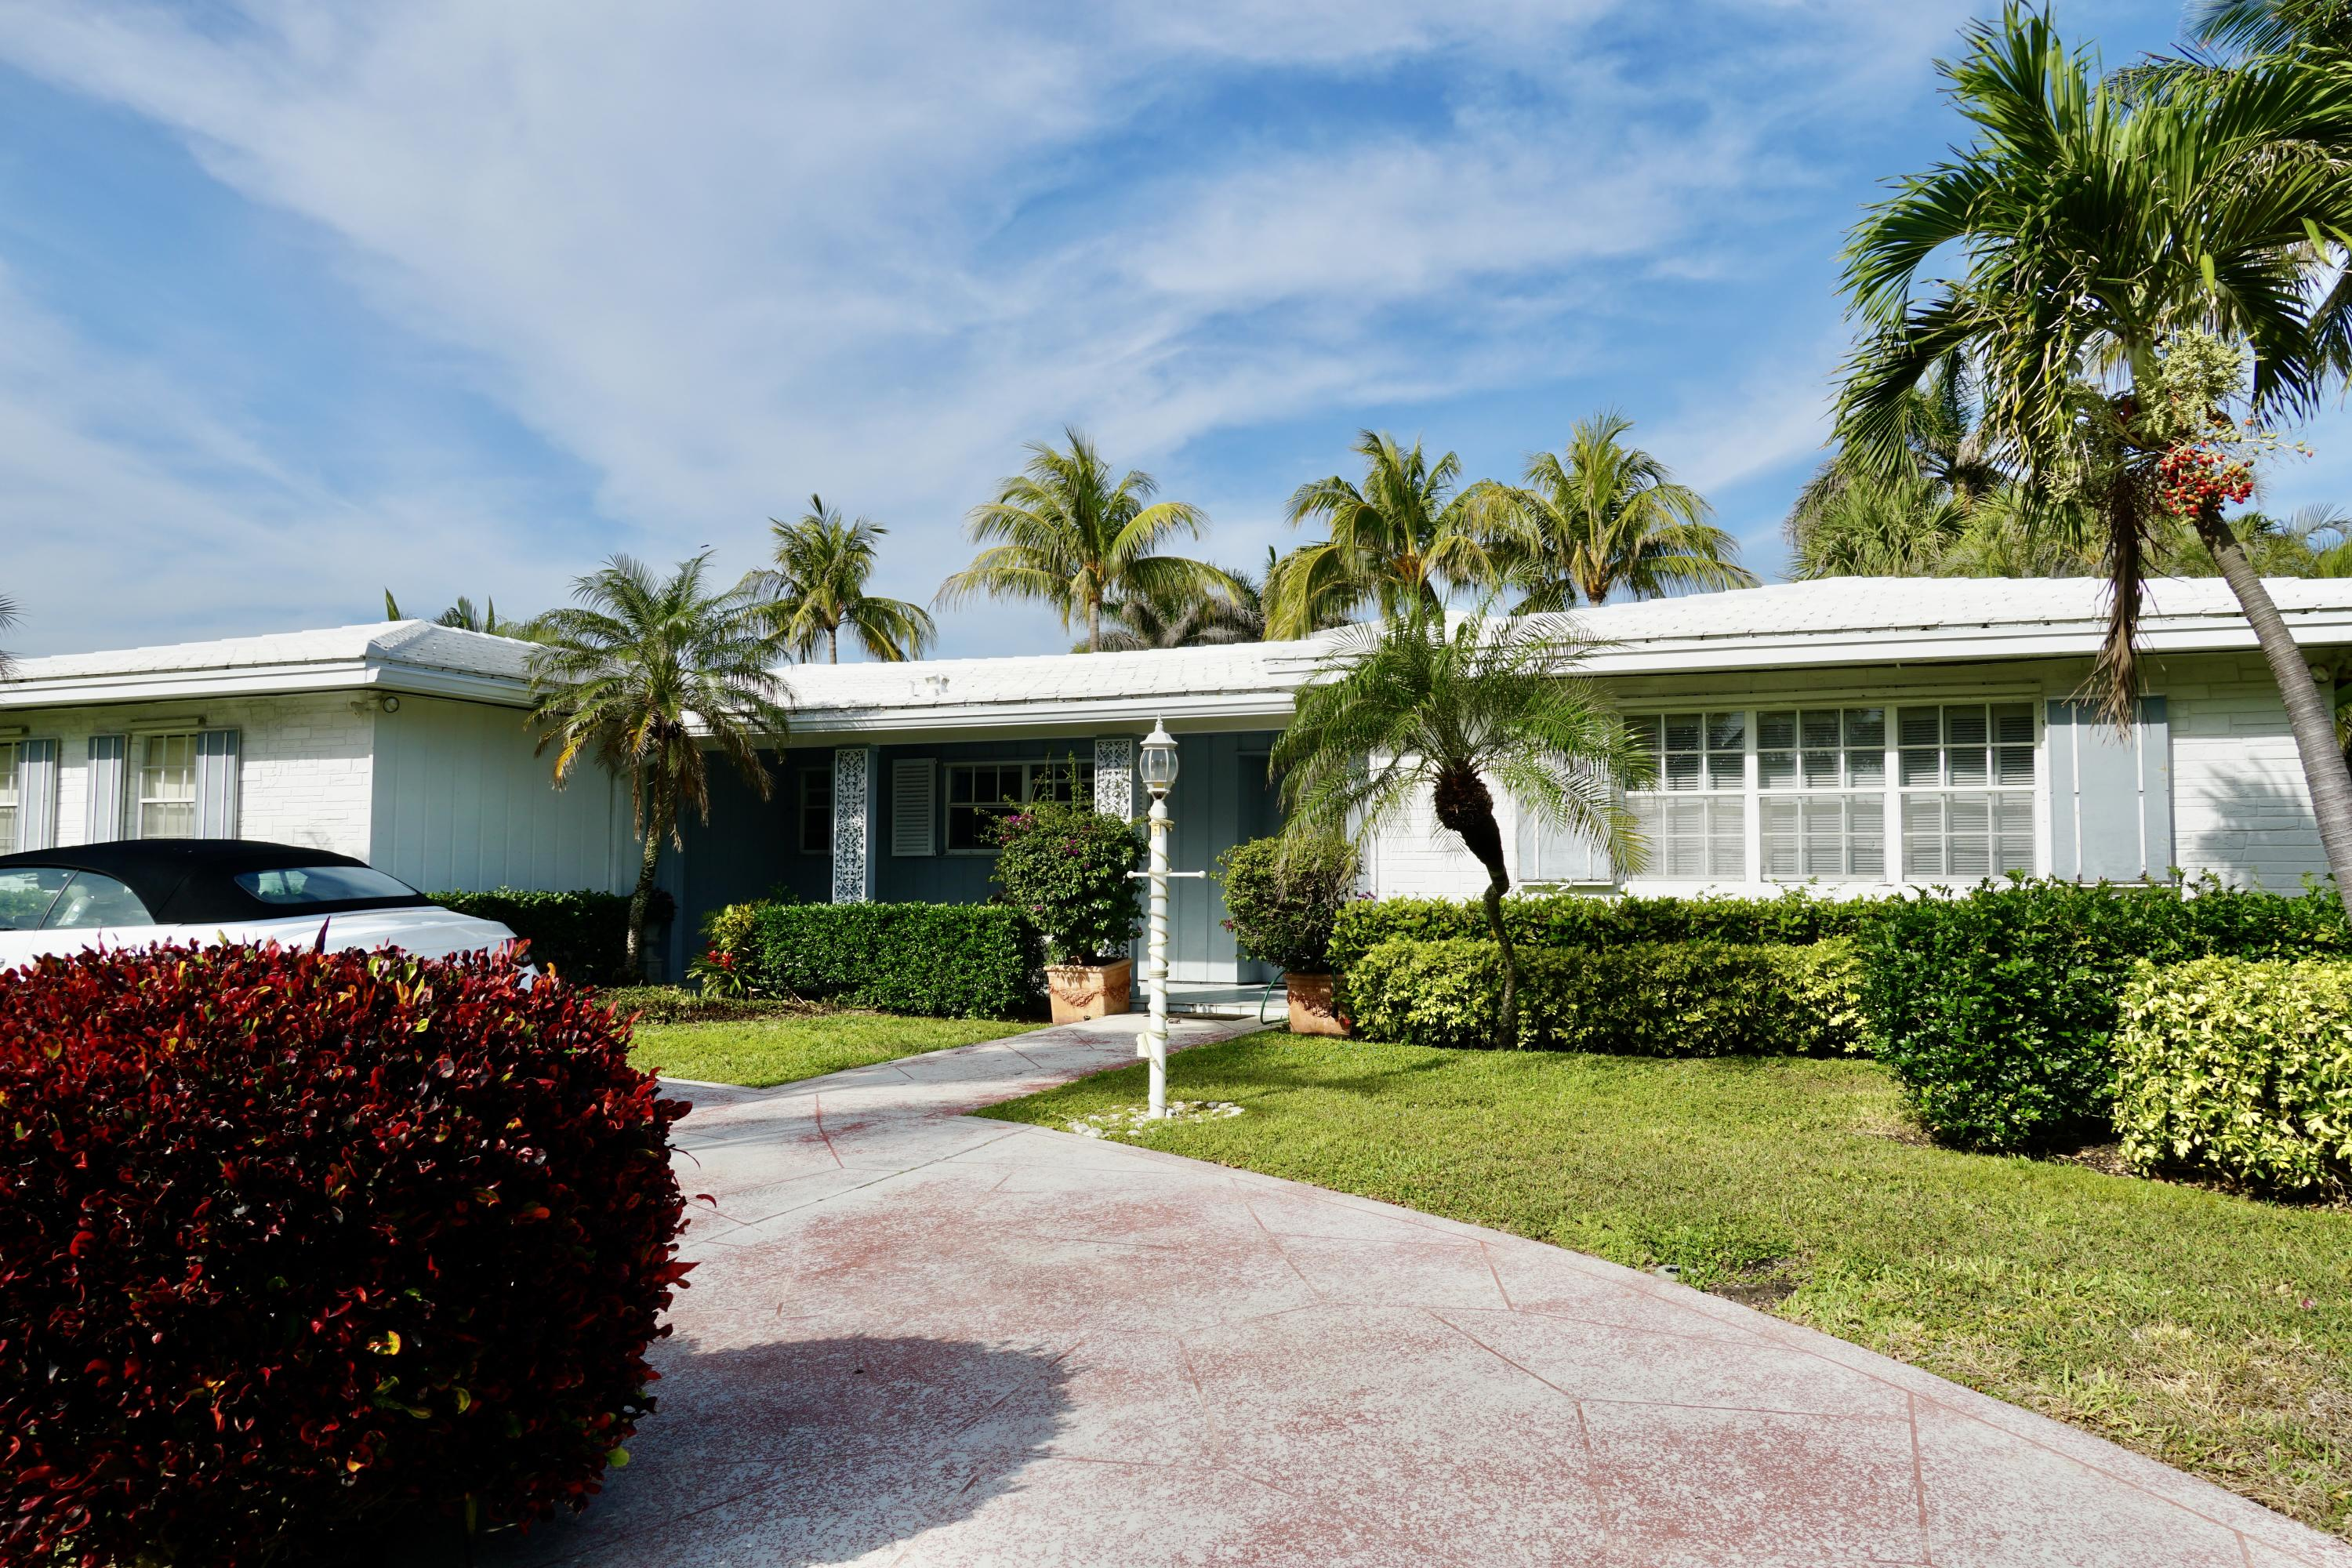 Great opportunity to renovate or build new with potential for second story water views! Close to the ocean and Palm Beach Tennis Center, as well as, to Palm Beach Par 3 golf course, 5 star hotels, Worth Avenue, restaurants and cultural centers.House is available individually or in combination with the adjacent vacant lot, also listed on MLS.